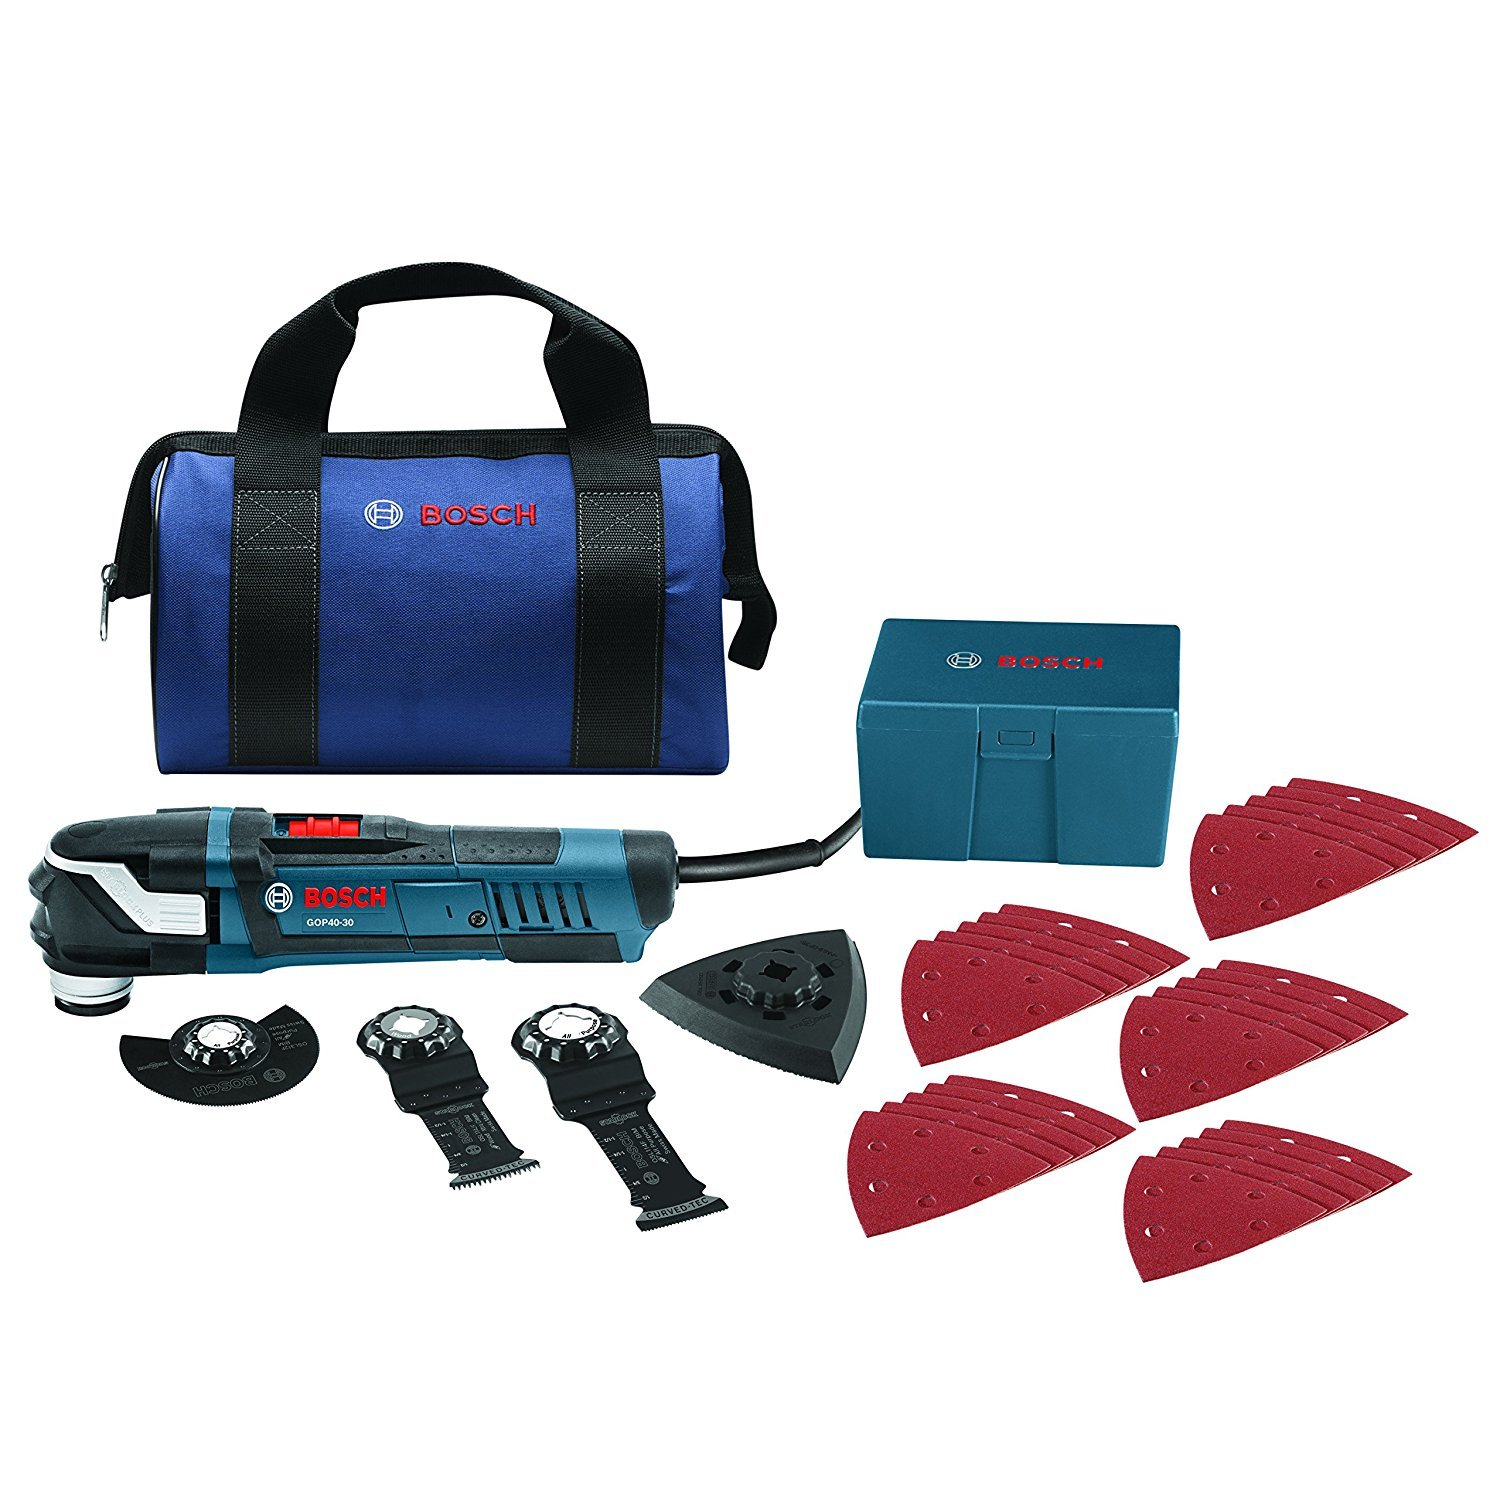 Bosch GOP40-30B StarlockPlus Oscillating Multi-Tool Kit with Snap-In Blade Attachment